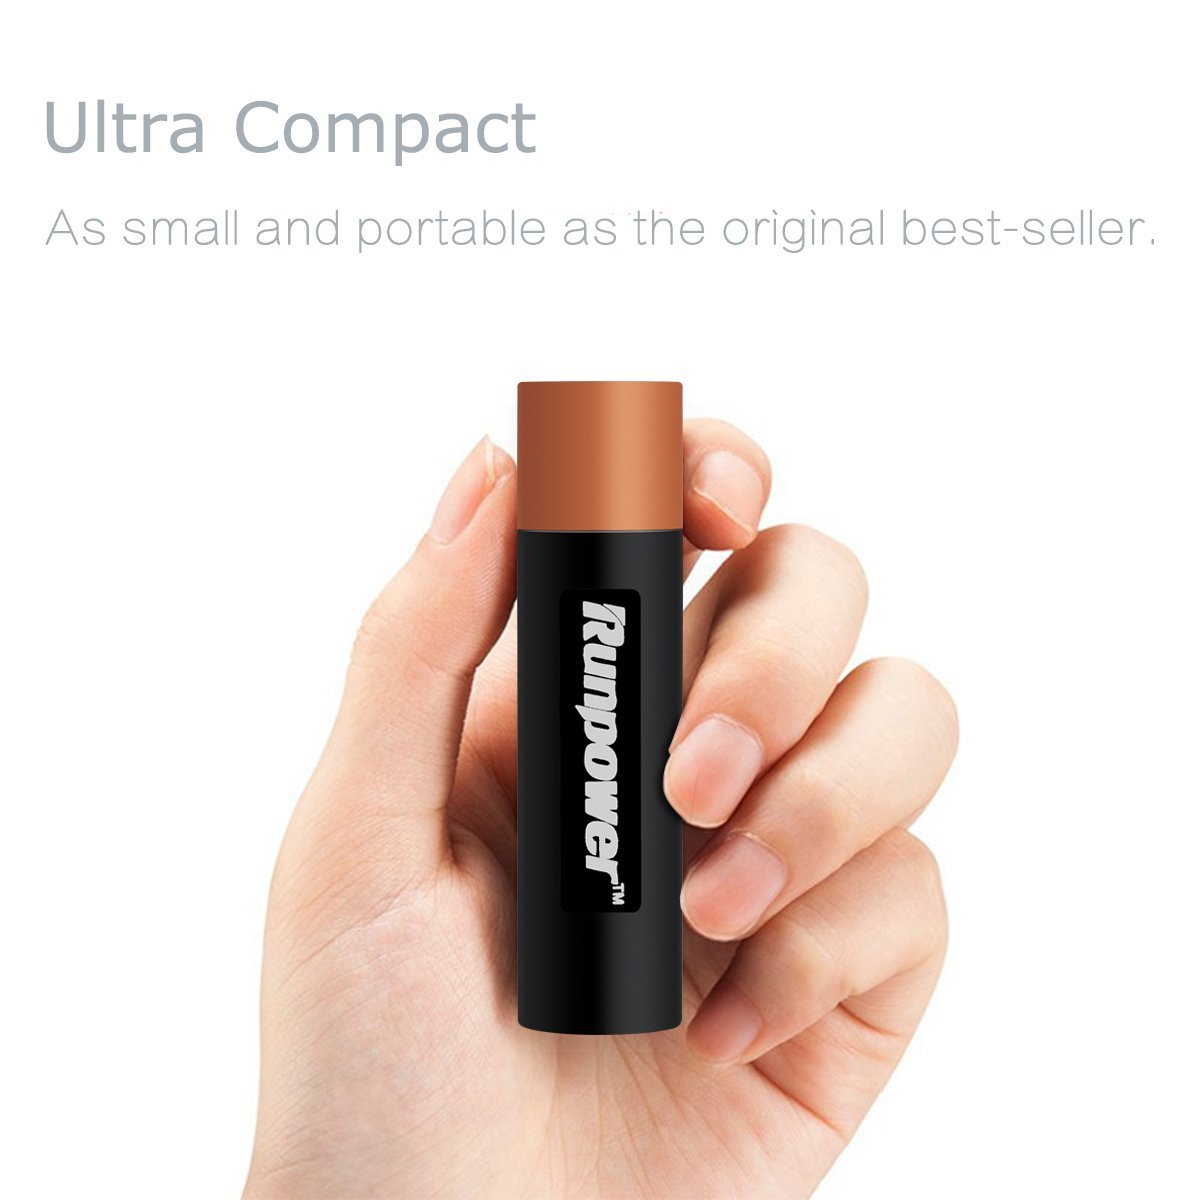 Runpower 2600mAh Ultra Slim Portable Power Bank Charger $4.29  Free Shipping from Amazon